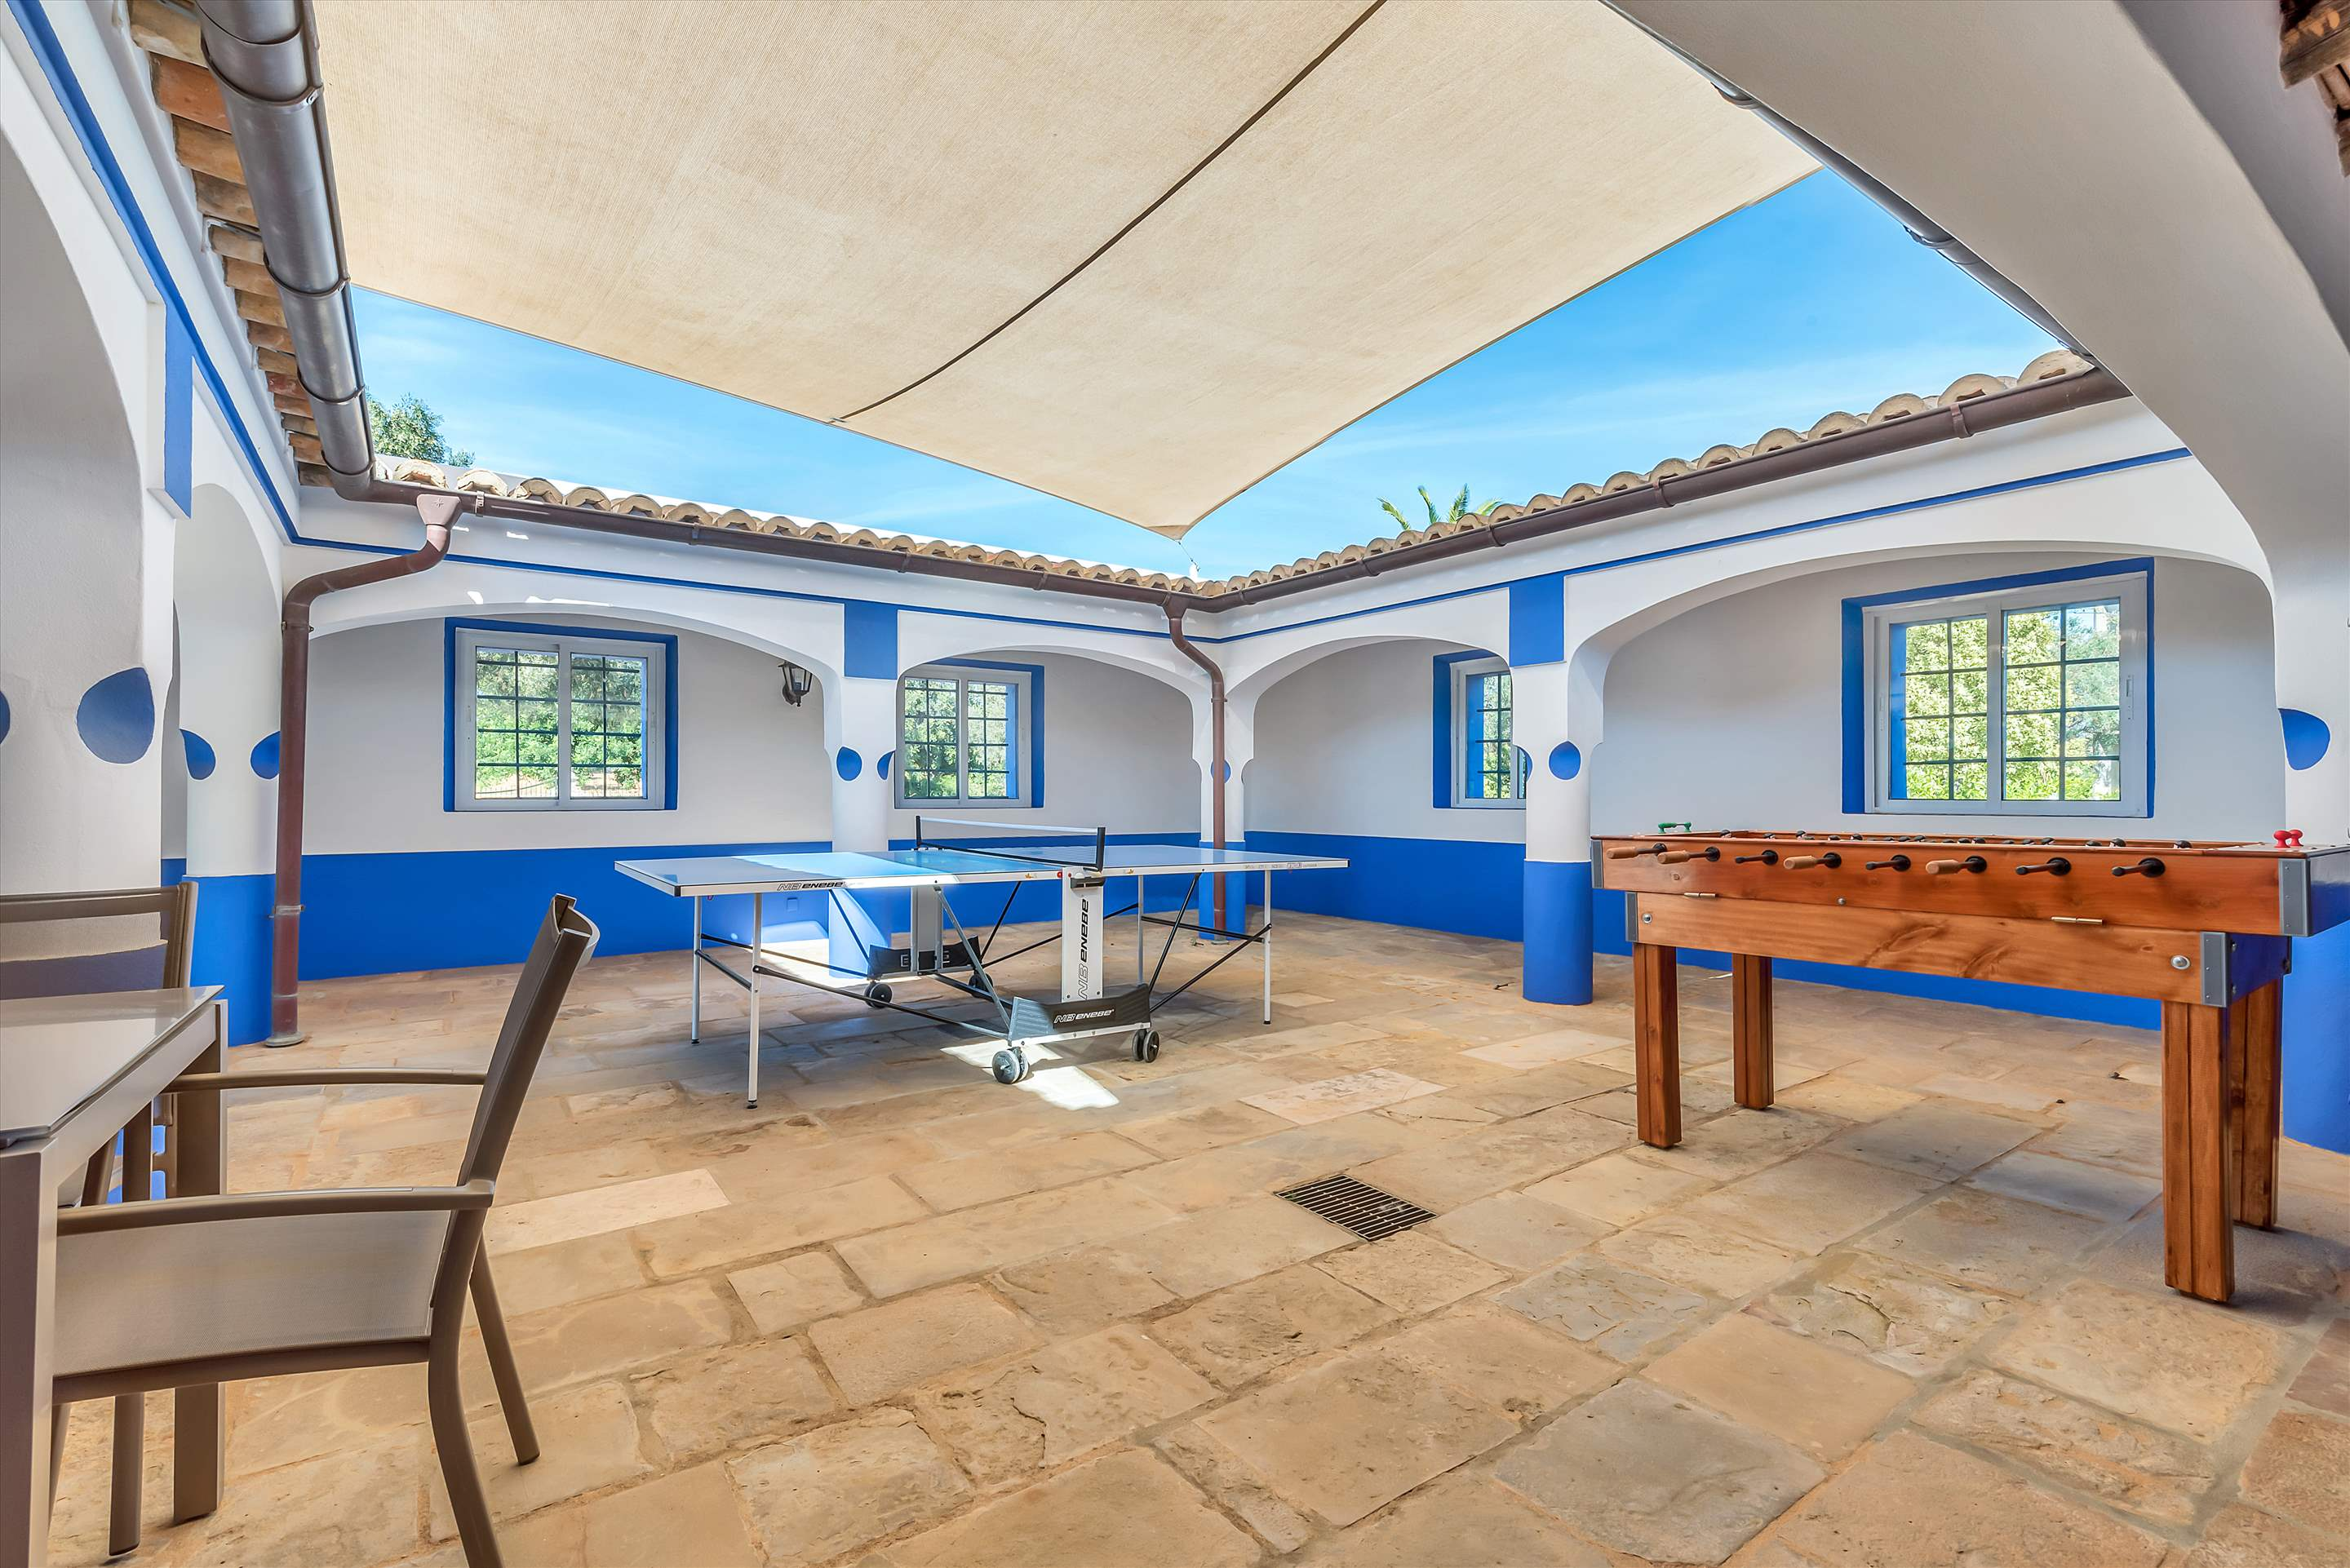 Casa Alemao, Main House, 5 Bedrooms, 5 bedroom villa in Vilamoura Area, Algarve Photo #37